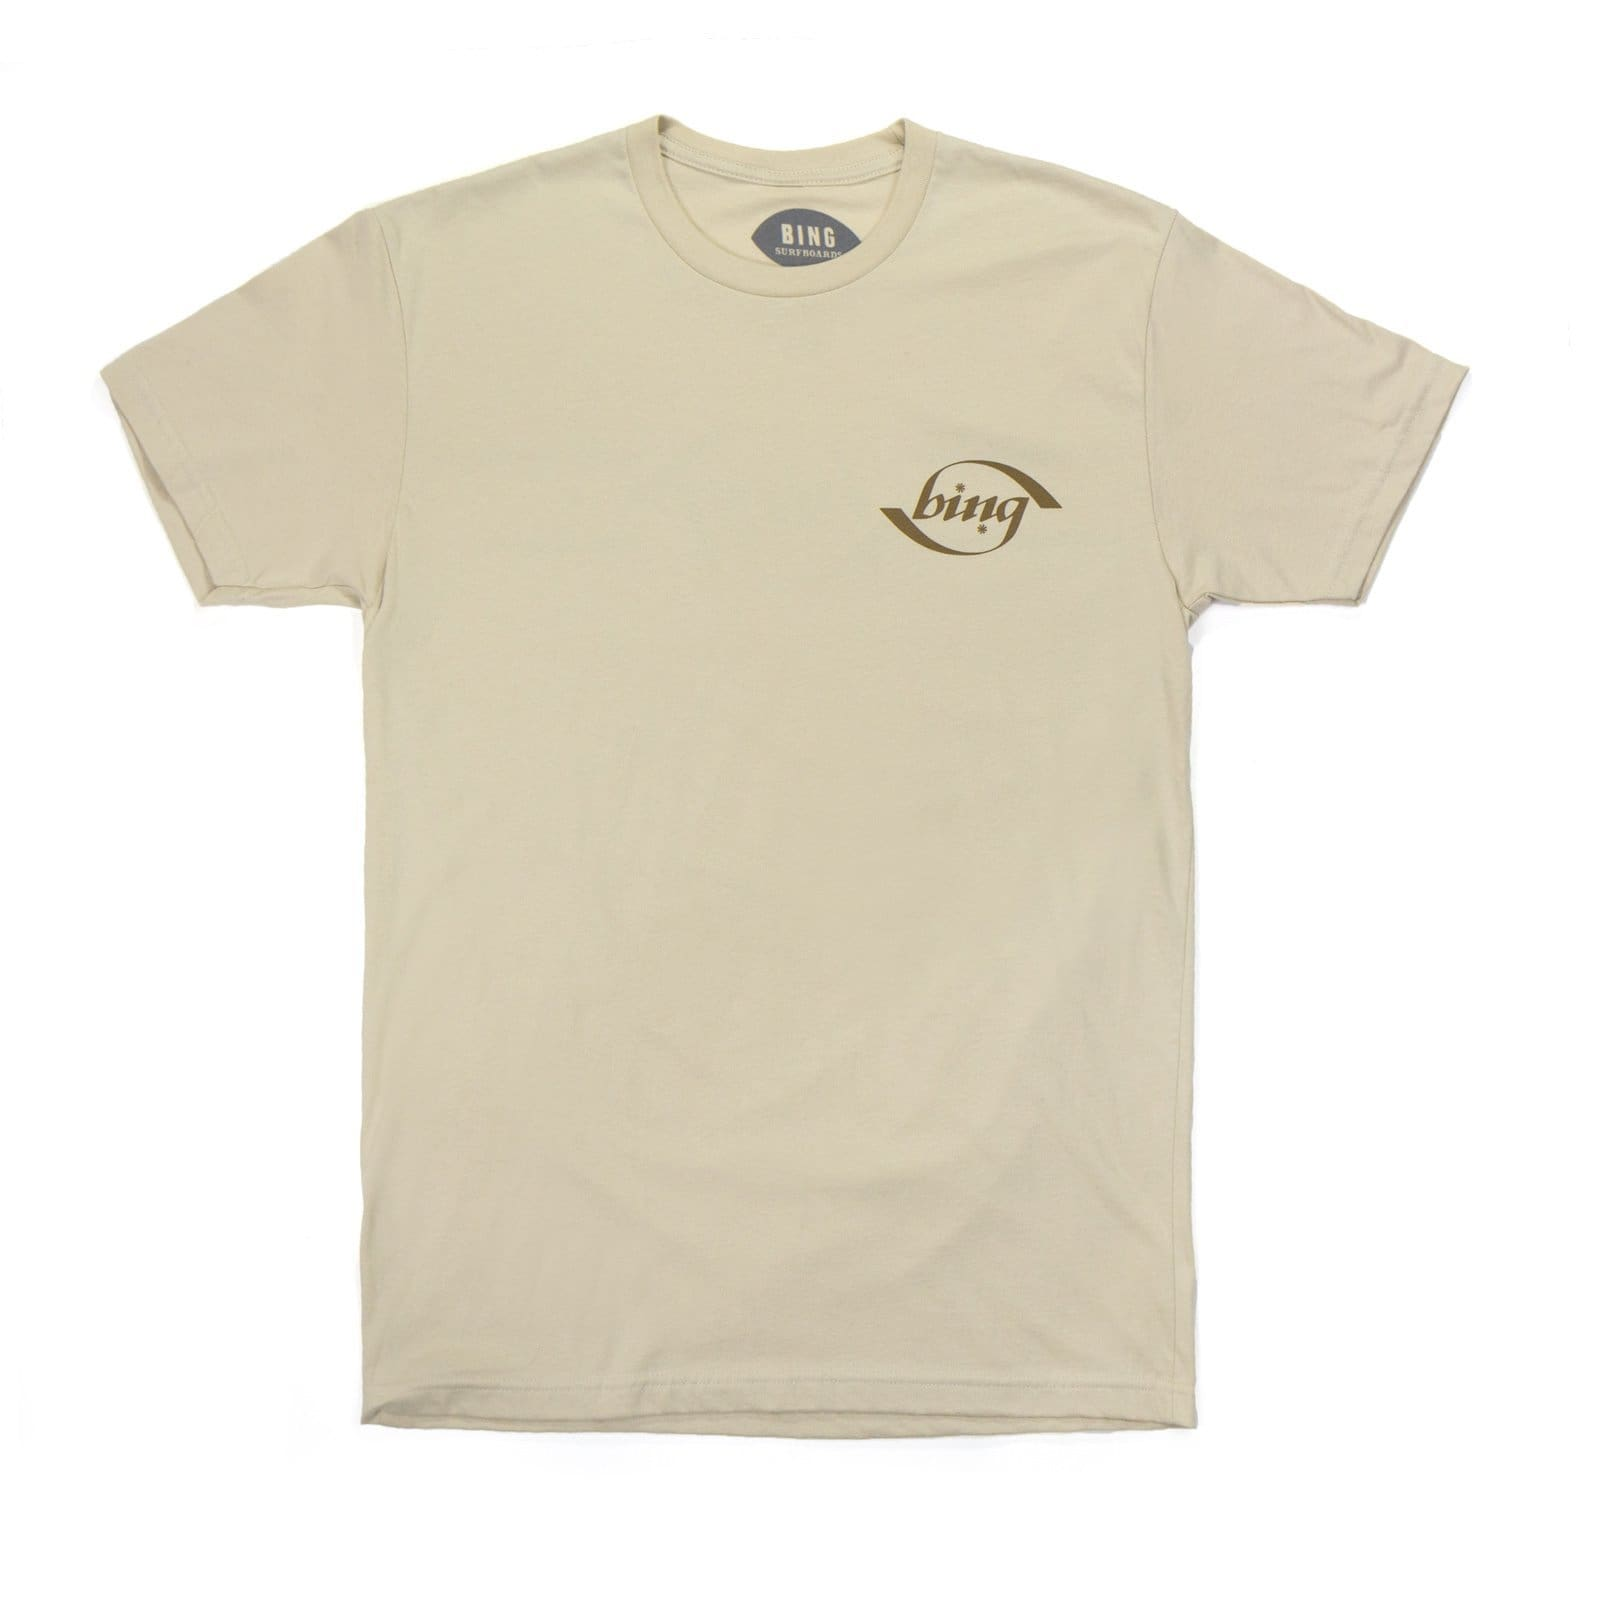 Bing 70s Stripe Premium S/S T-Shirt Cream - clothing